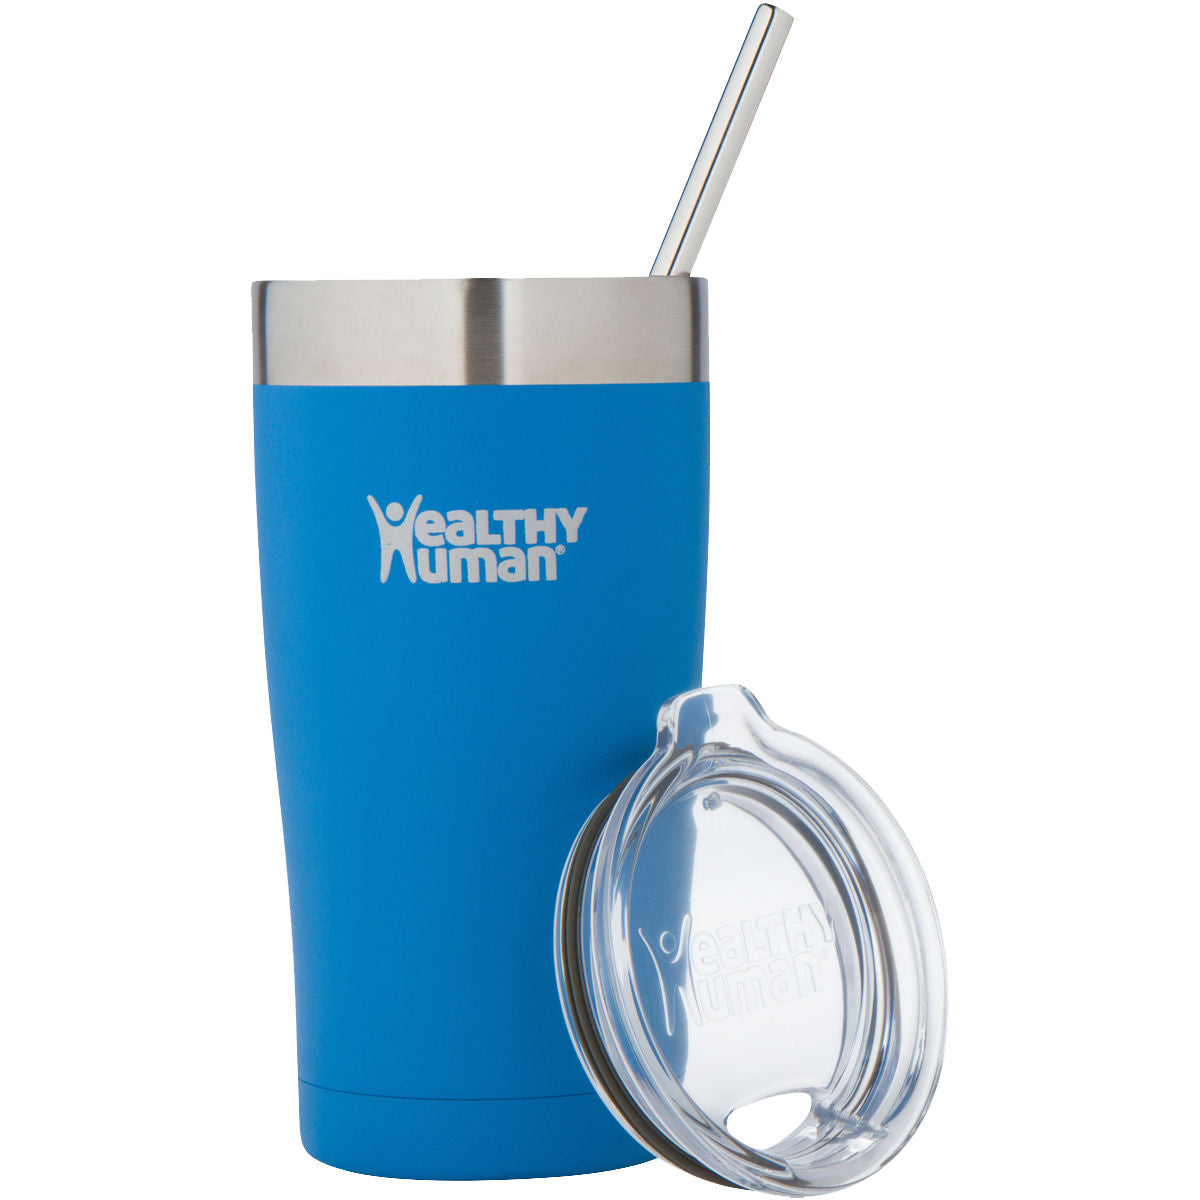 20oz Healthy Human Cruiser Insulated Tumblers